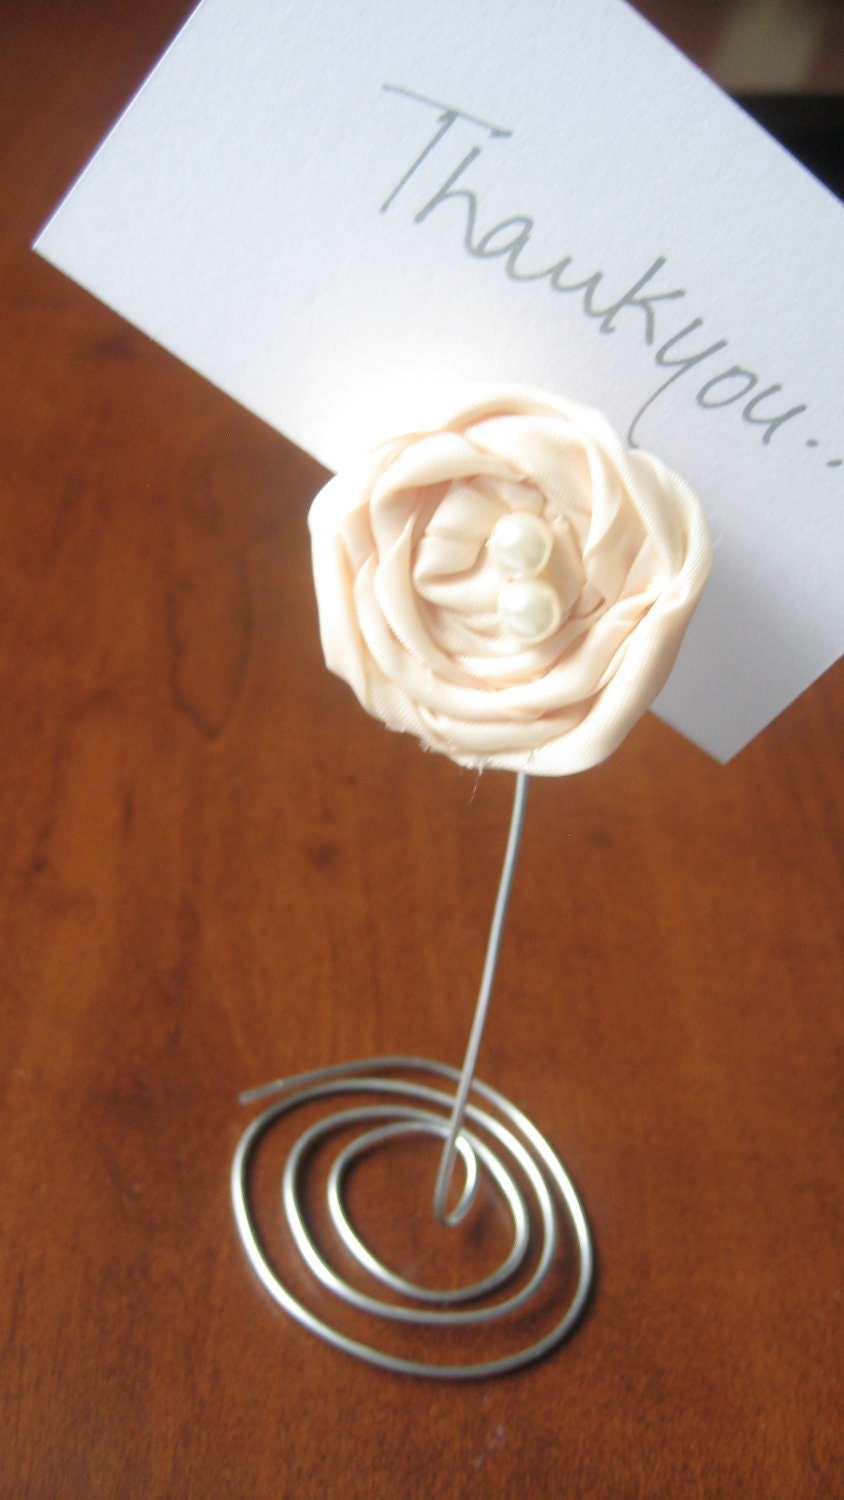 Items Similar To Reception Table Place Card Holders Wedding Favour On Etsy